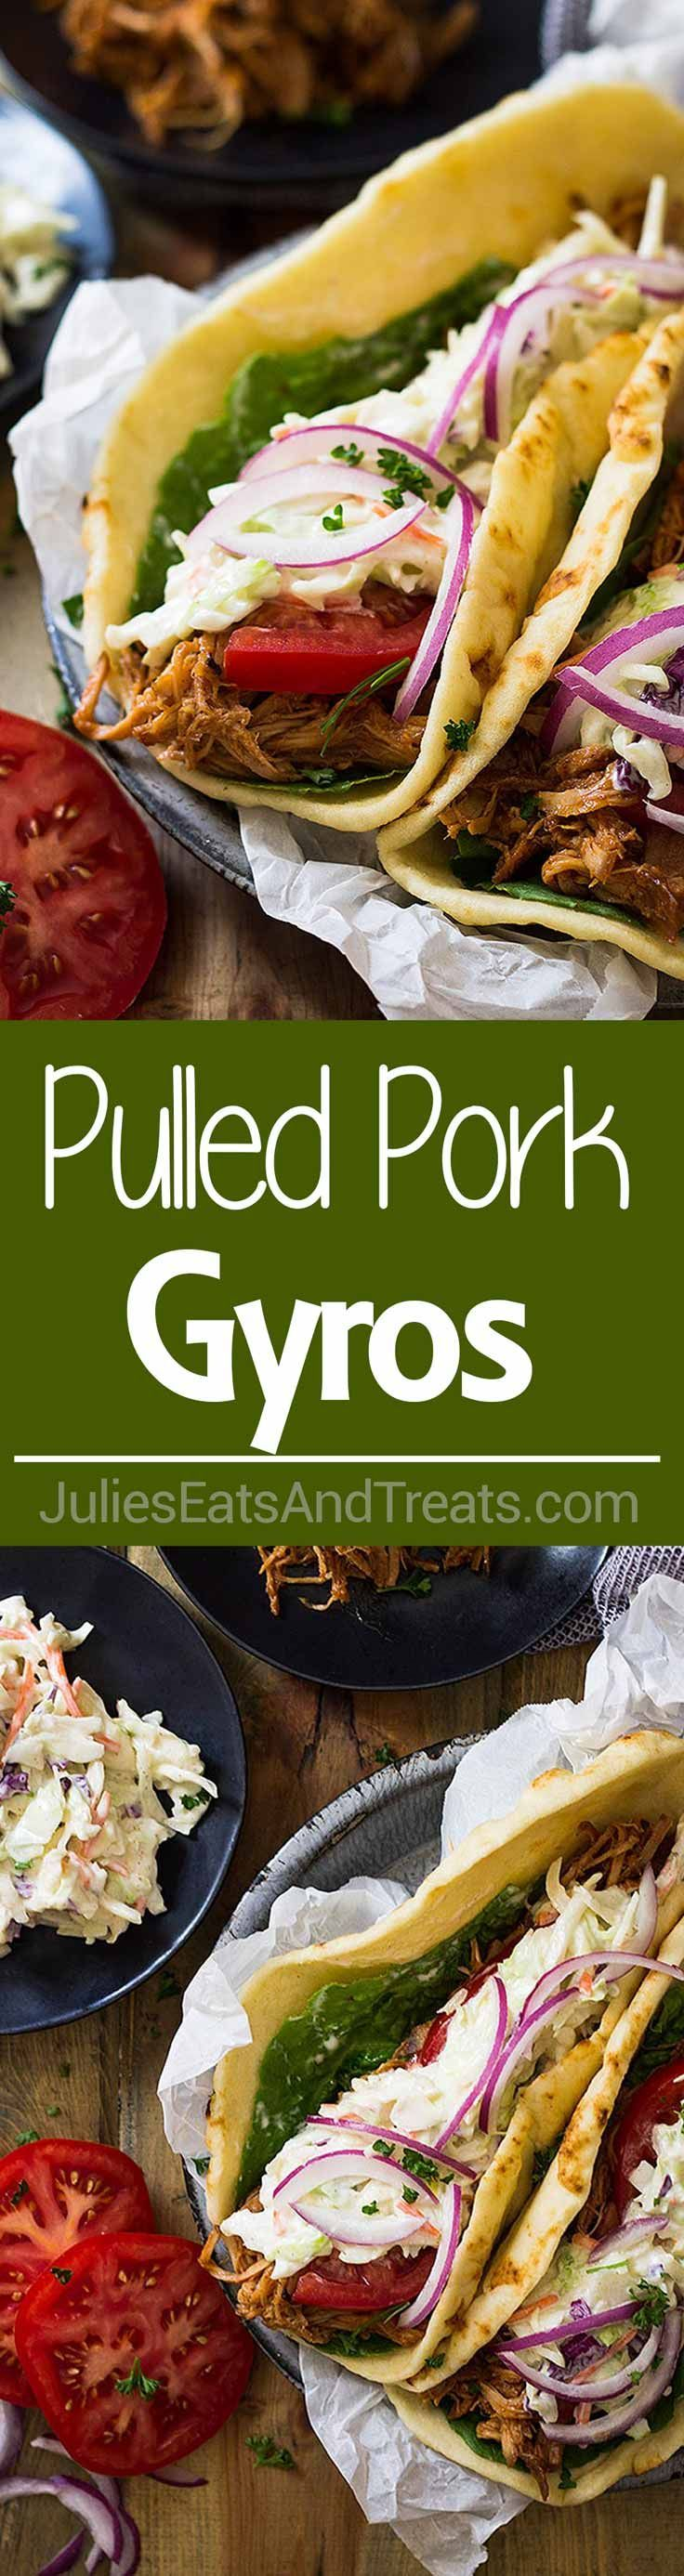 BBQ Pulled Pork Gyros ~ Filled with BBQ Pulled Pork, Creamy Coleslaw, Tomato, Onion and All Wrapped in a Soft Flatbread. Perfect for An Easy Lunch or Dinner! ~ http://www.julieseatsandtreats.com